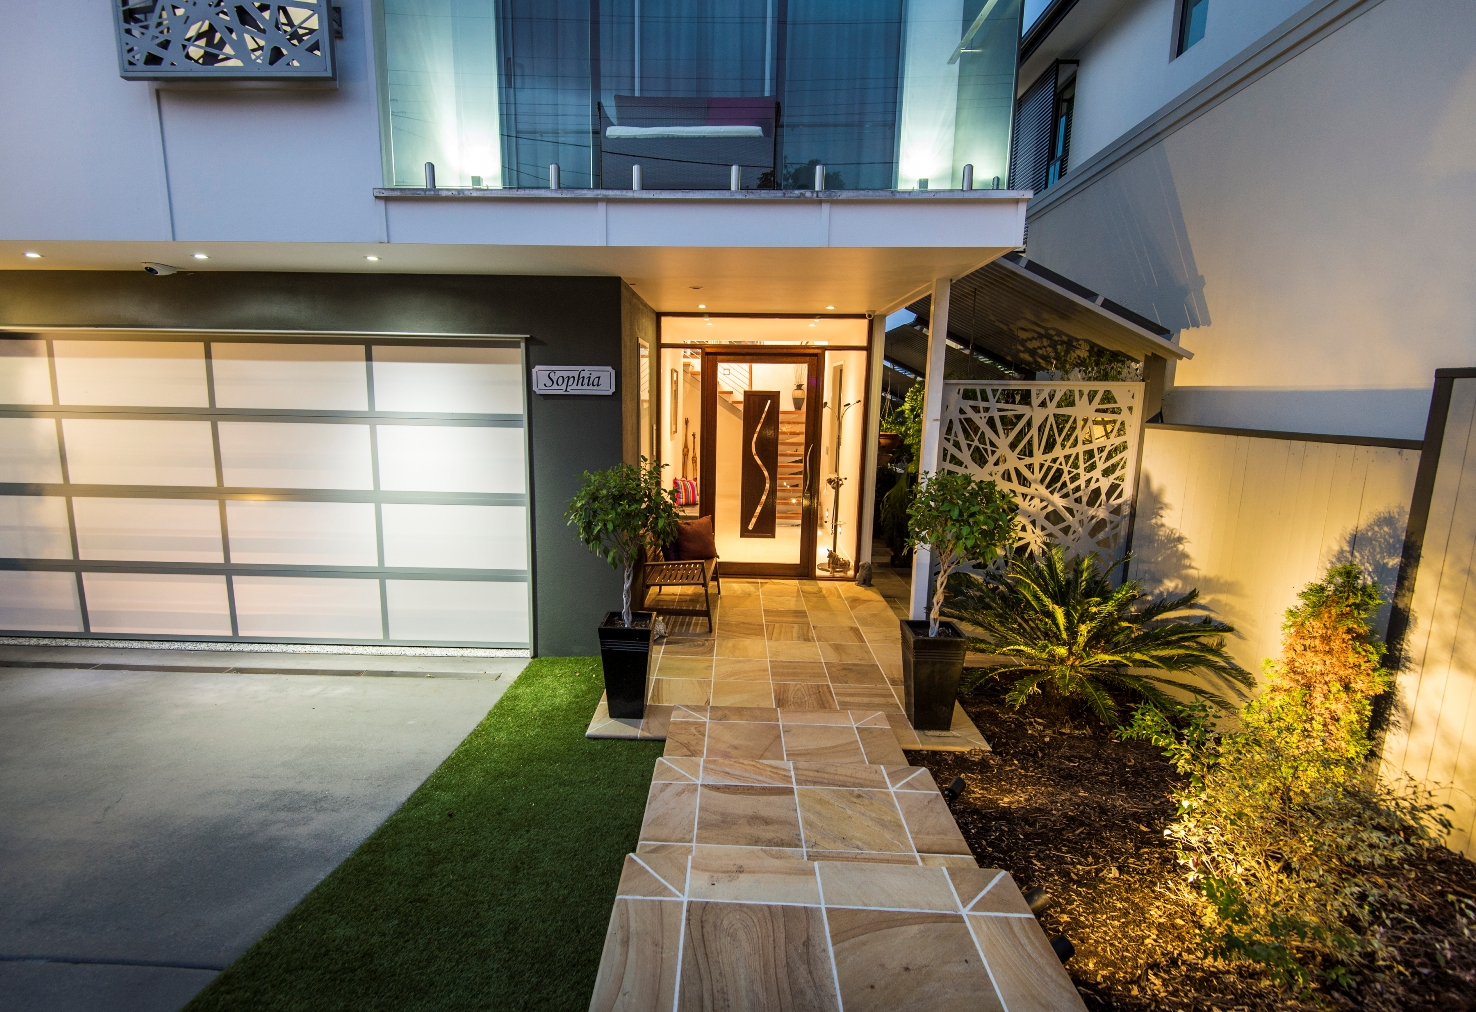 Modern architectural new home brisbane sandstone entry stairs timber pivot door lighting driveway jpg